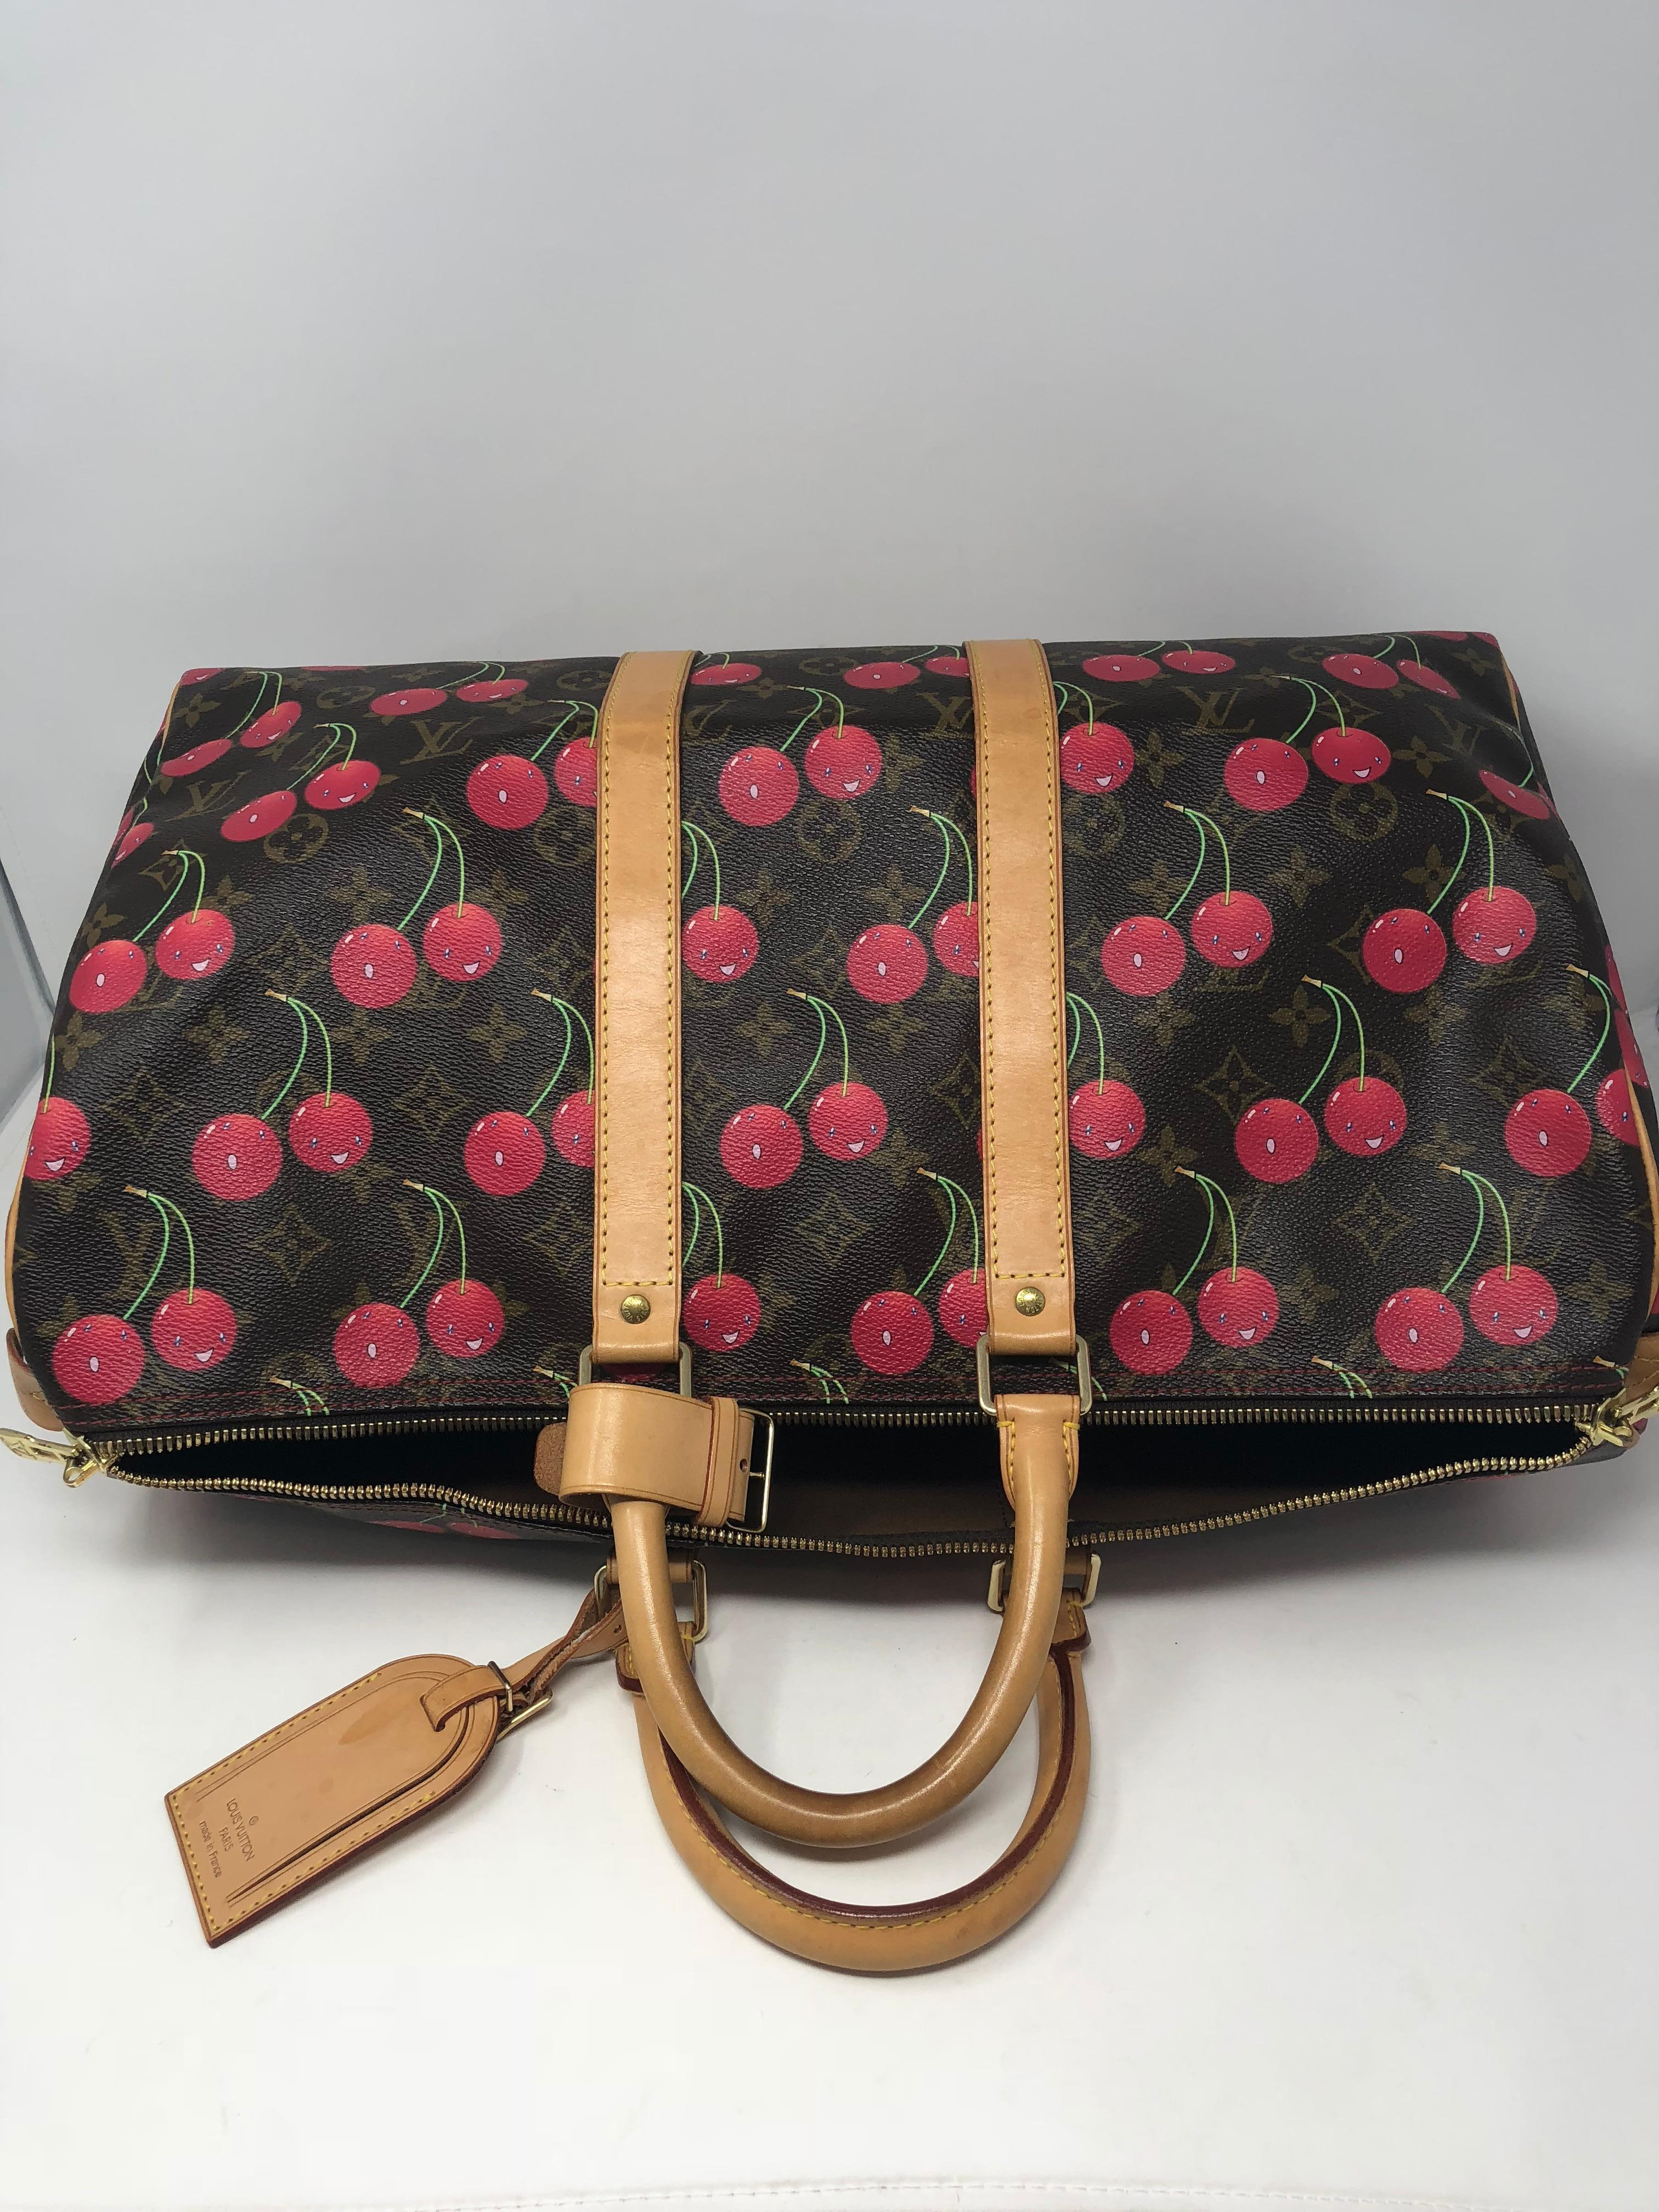 913f3f6da43b Louis Vuitton Monogram Cerises Cherry Keepall 45 Travel Bag at 1stdibs